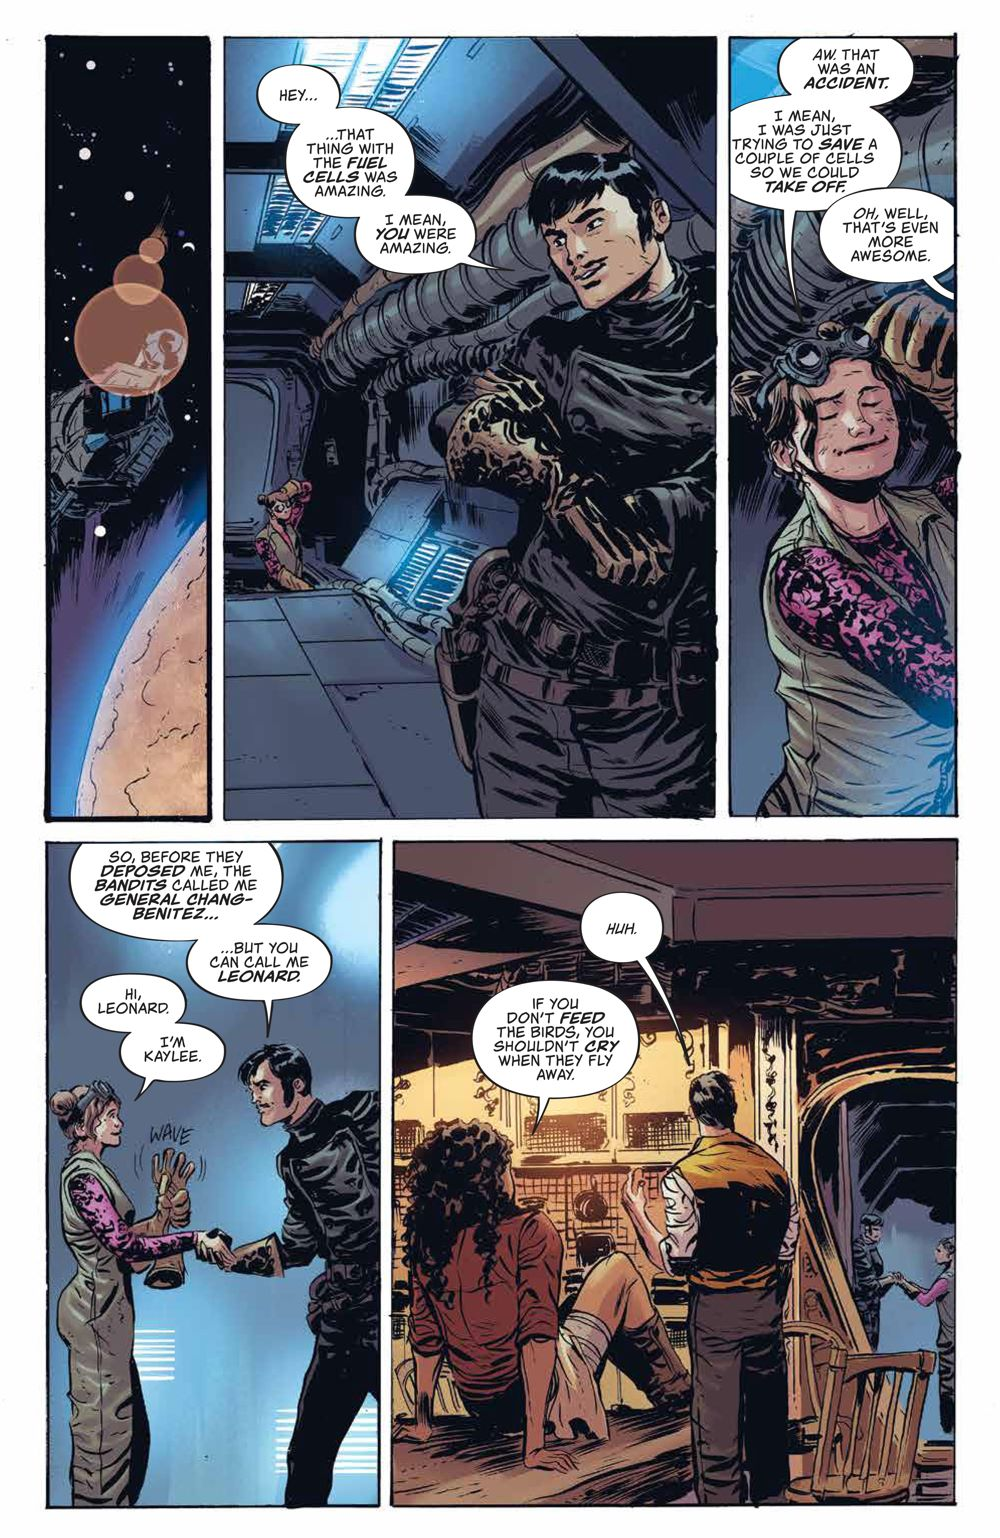 Firefly_UnificationWar_v2_SC_PRESS_14 ComicList Previews: FIREFLY THE UNIFICATION WAR VOLUME 2 TP